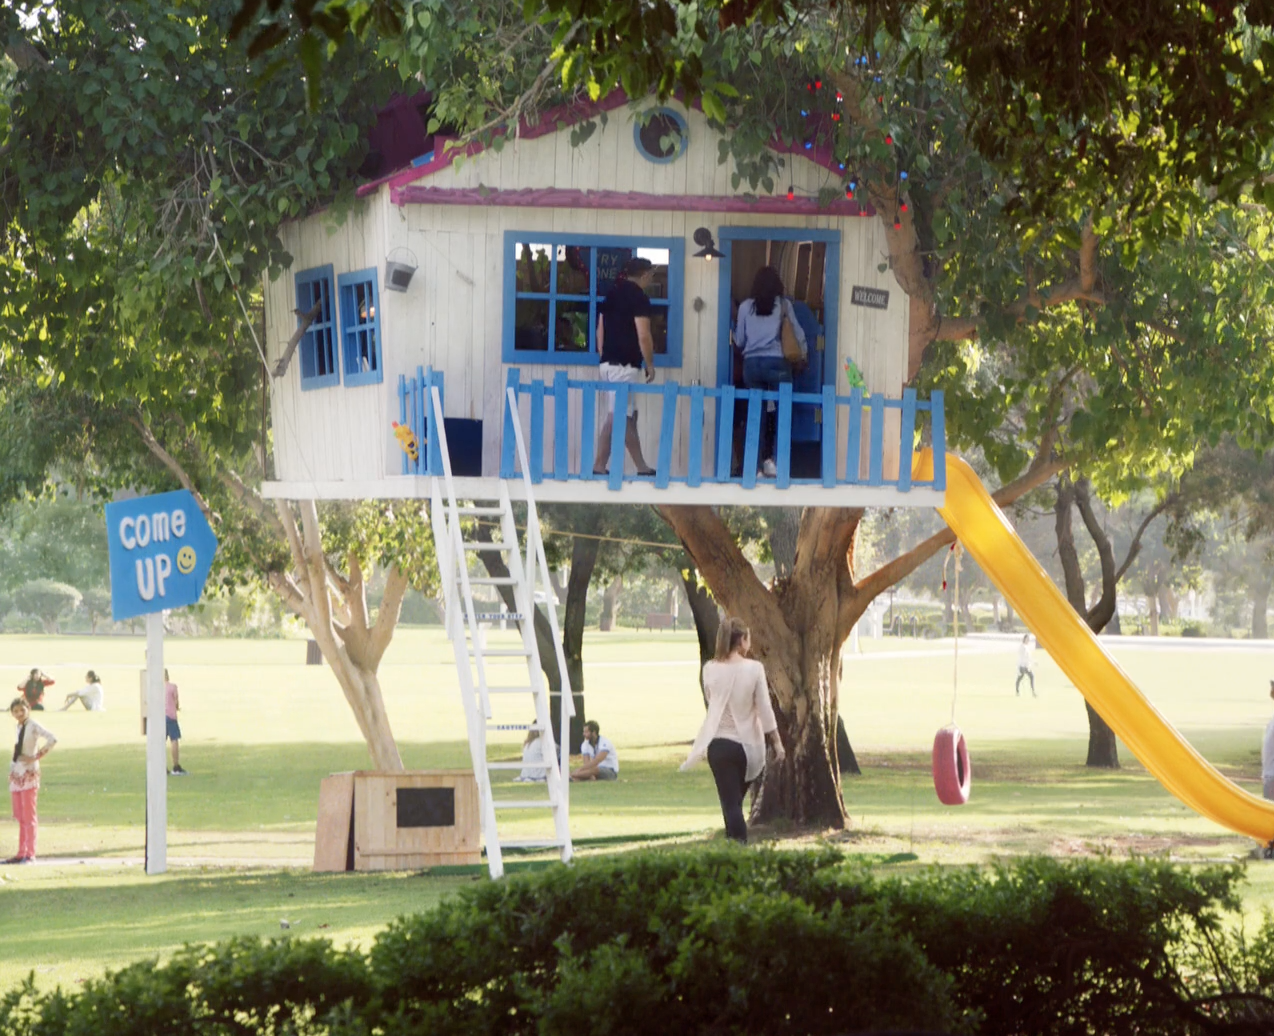 Wrigley's Tree House